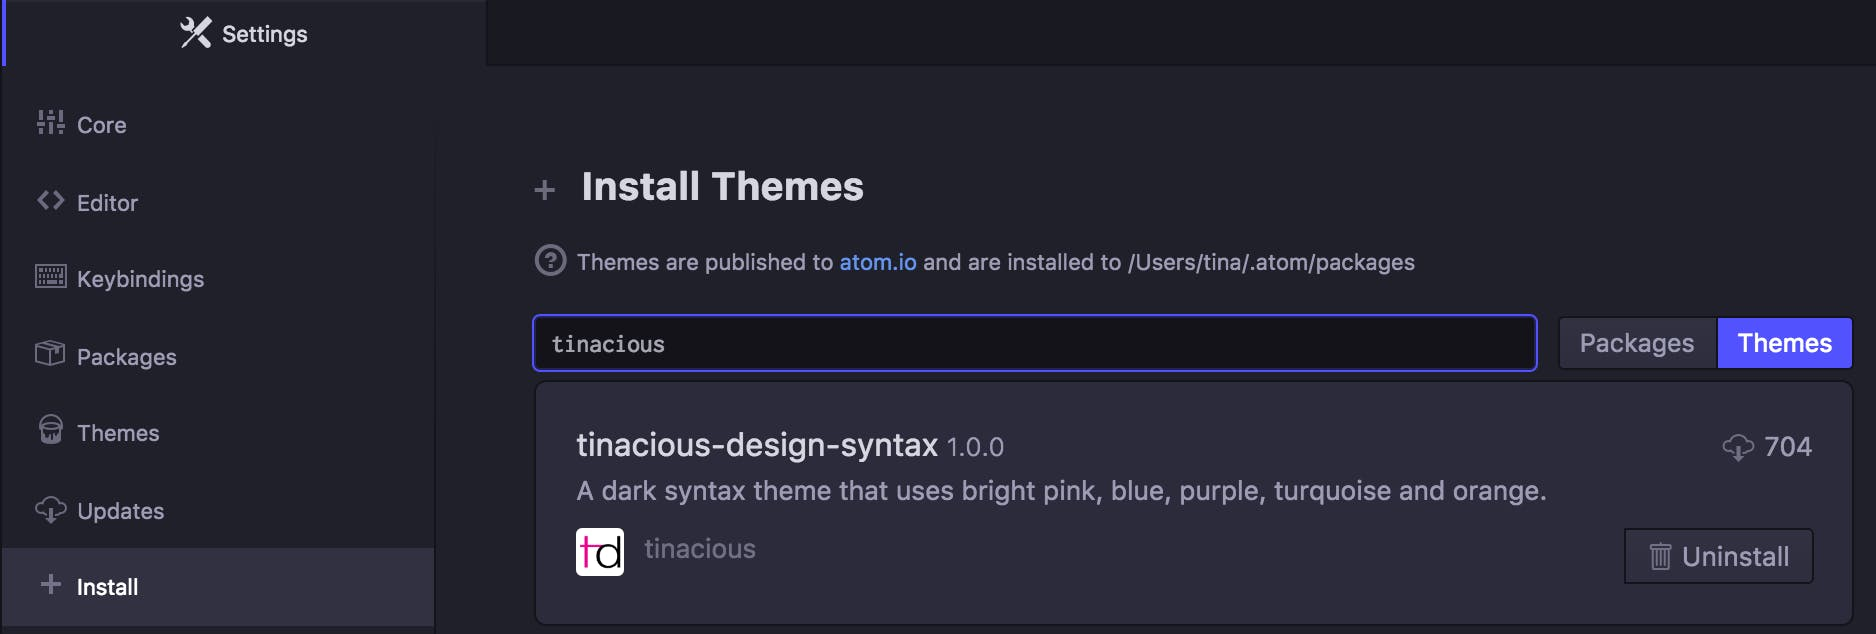 Installing Tinacious Design syntax theme from the Install tab in Atom